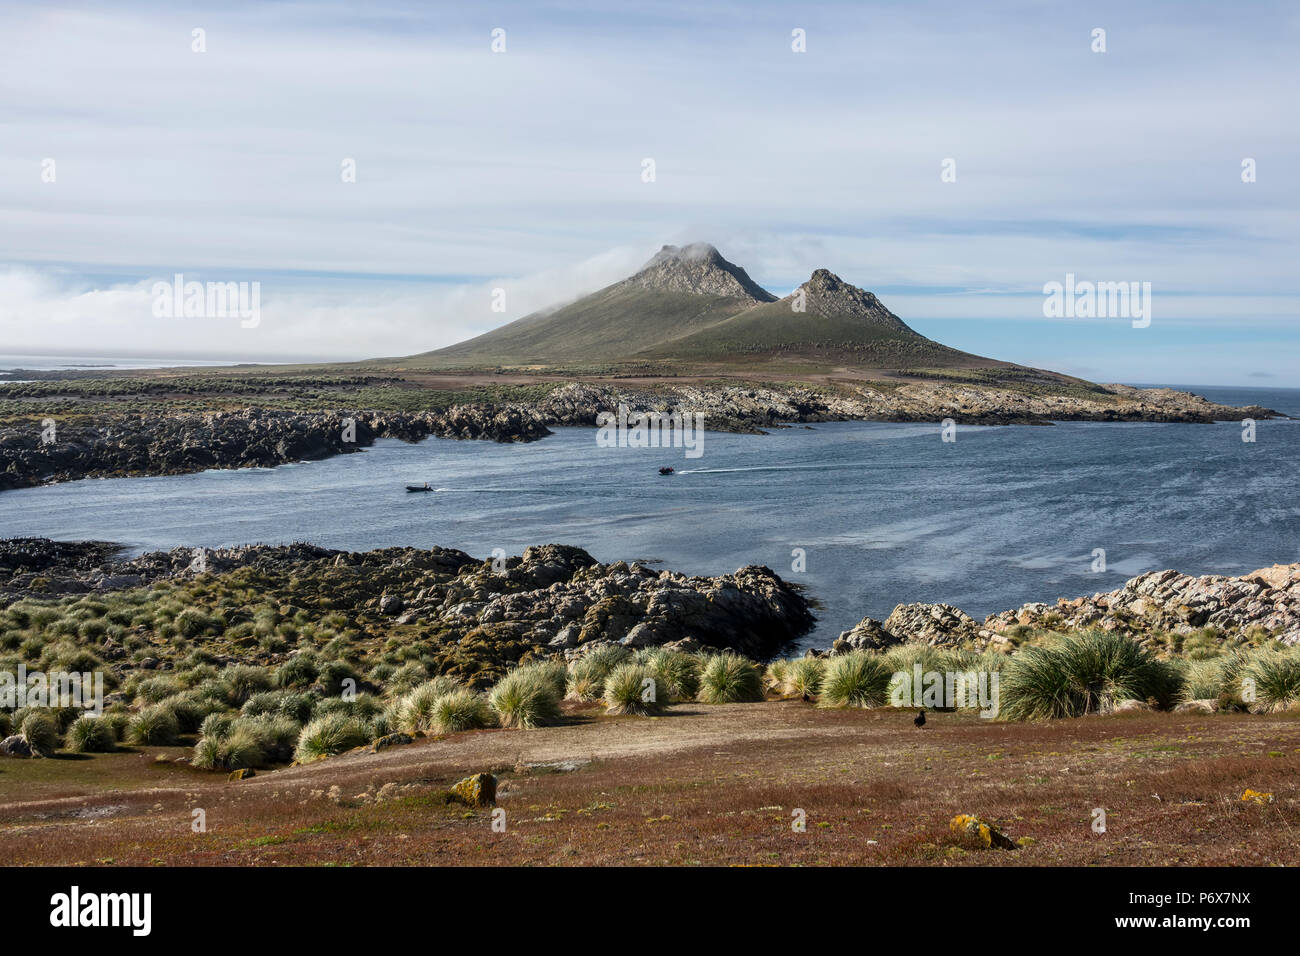 The rocky peaks of Steeple Jason Island, Falkland Islands Stock Photo